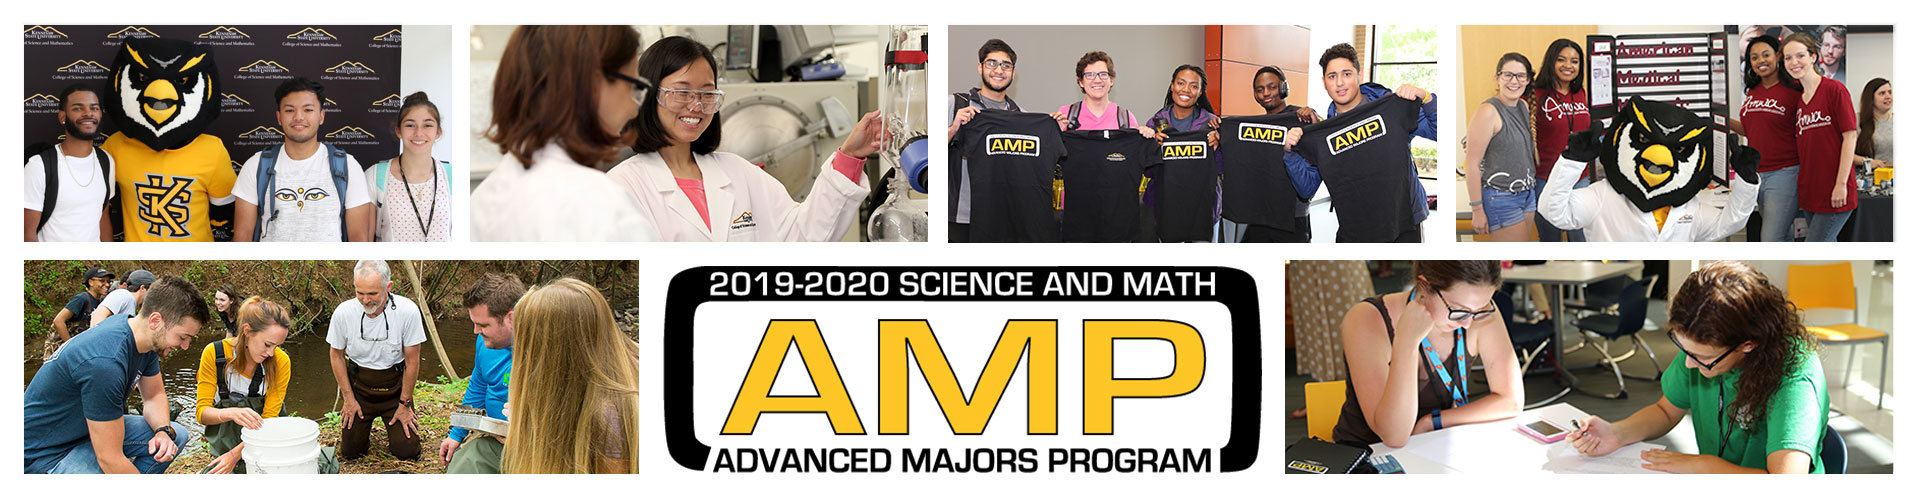 Photo collage of students in the Advanced Majors Program 2019-2020